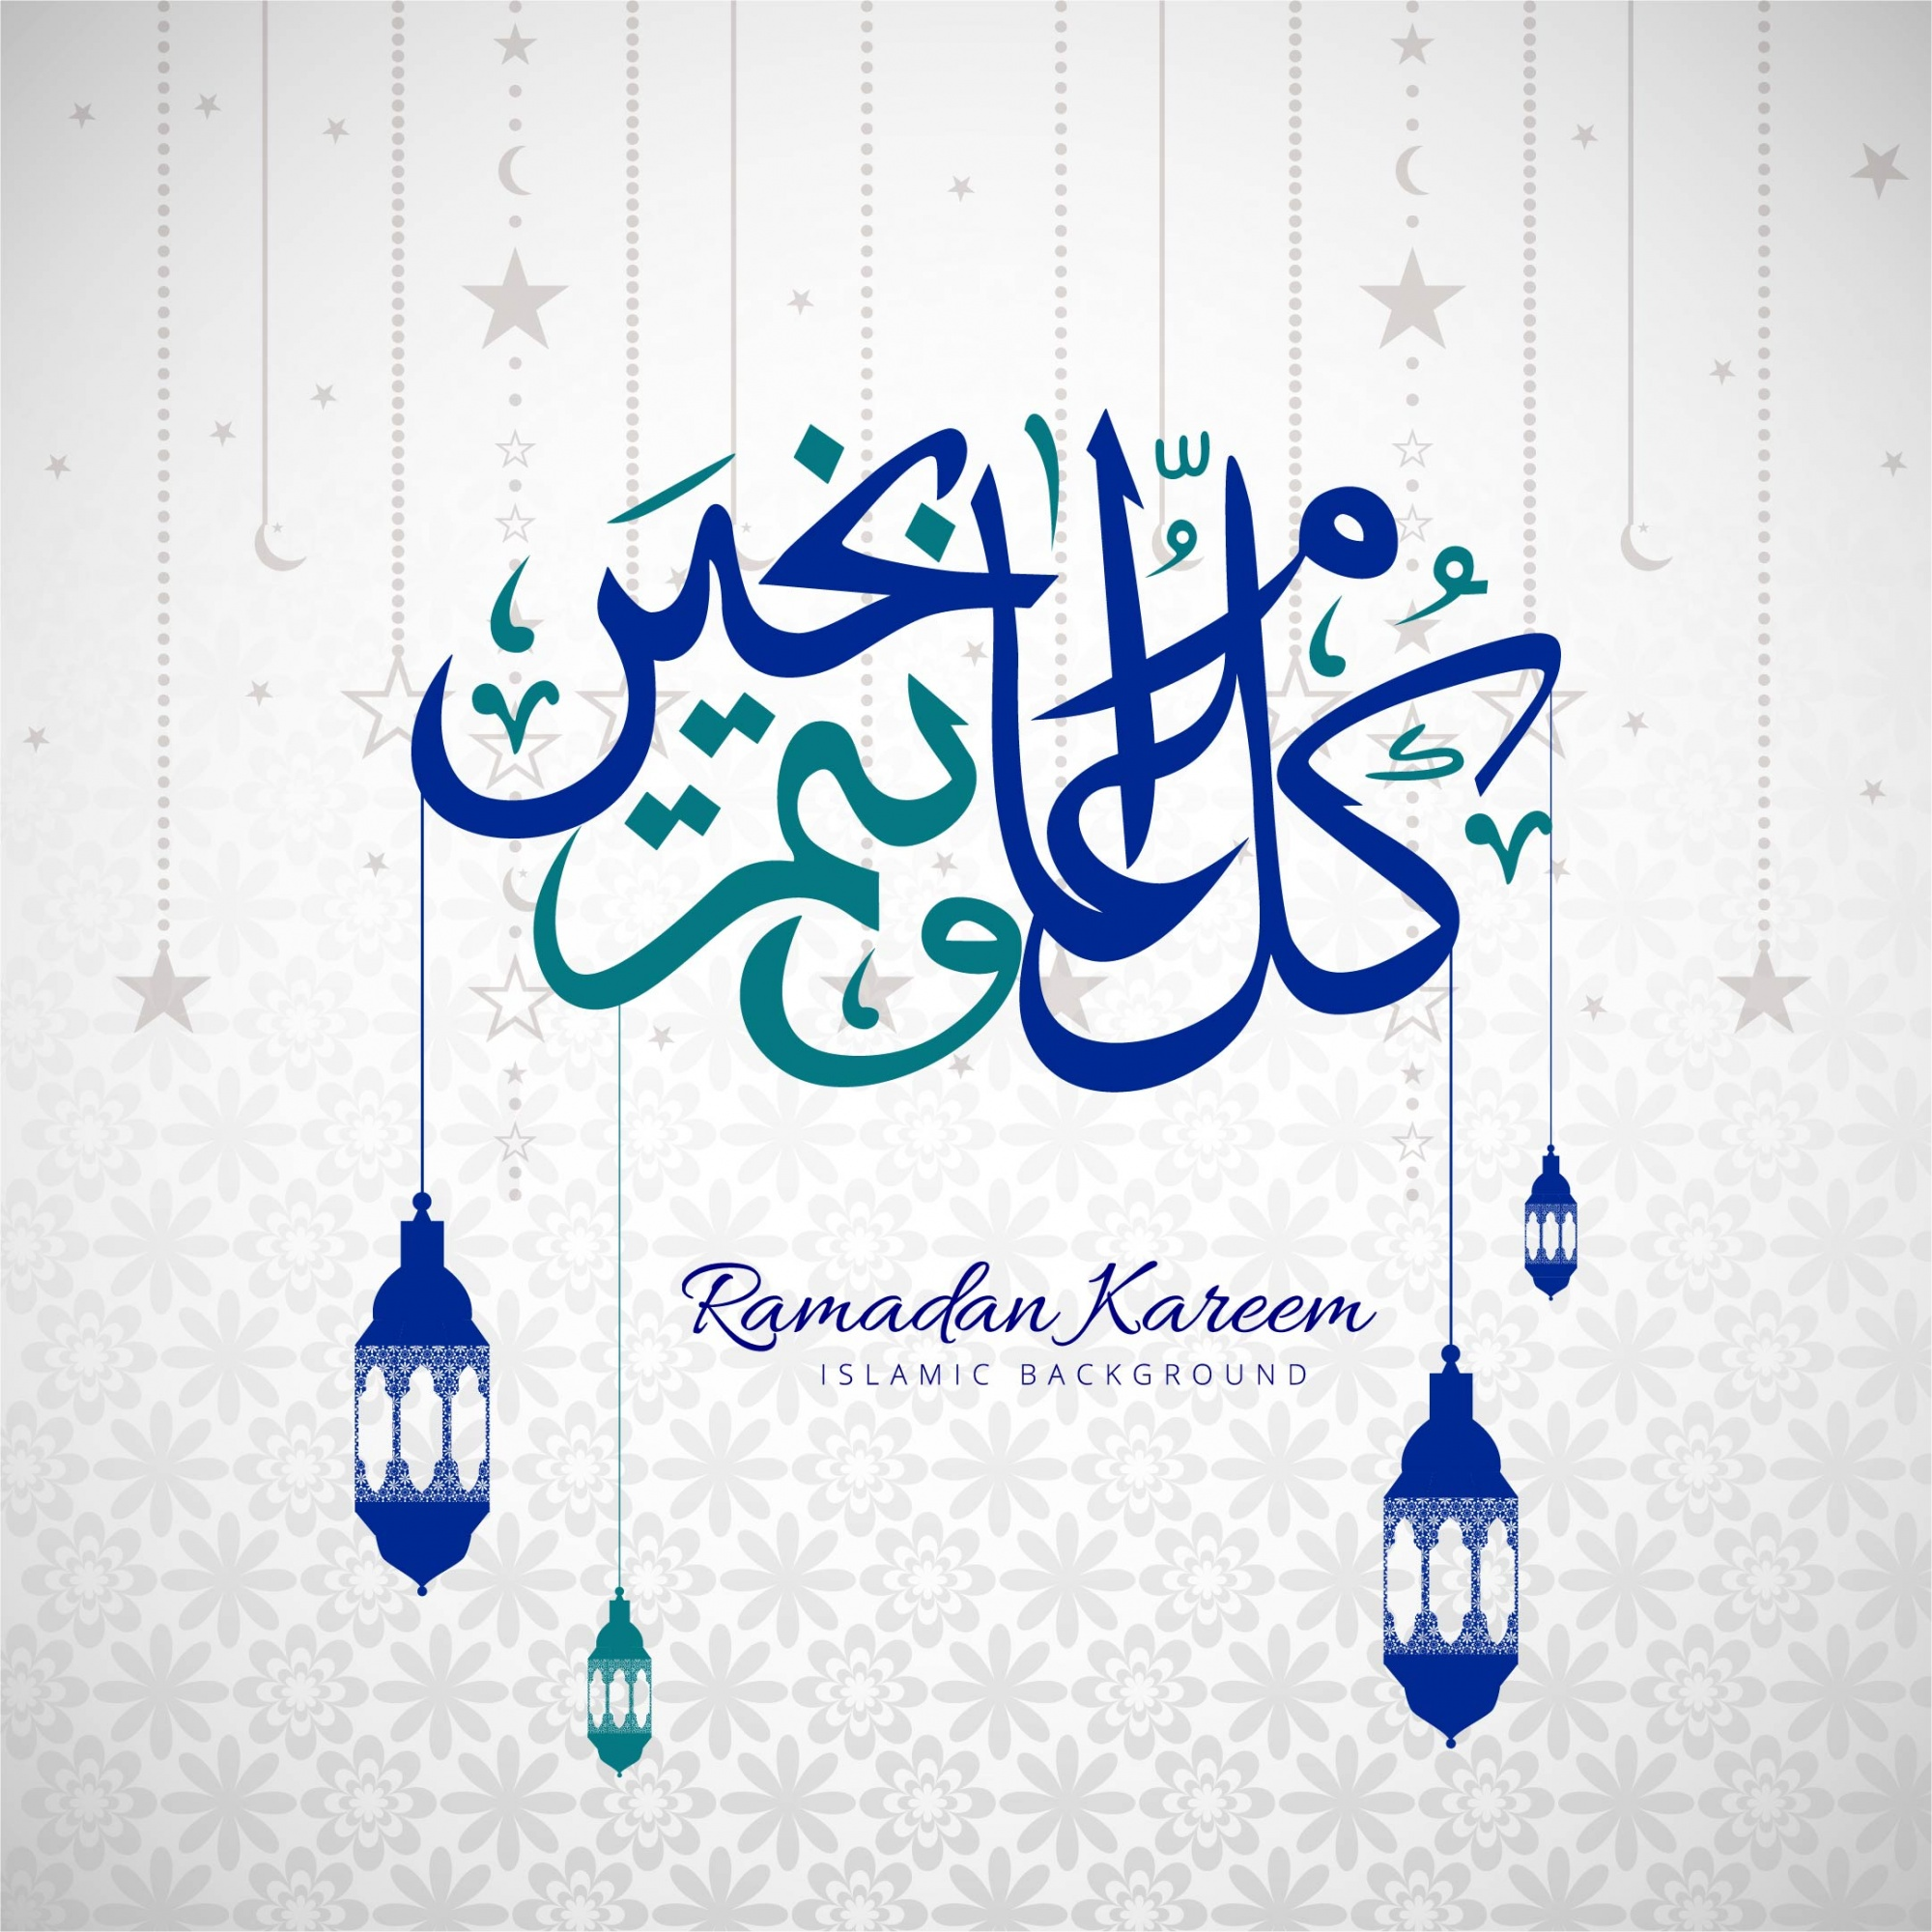 Elegant ramadan kareem illustration with lettering